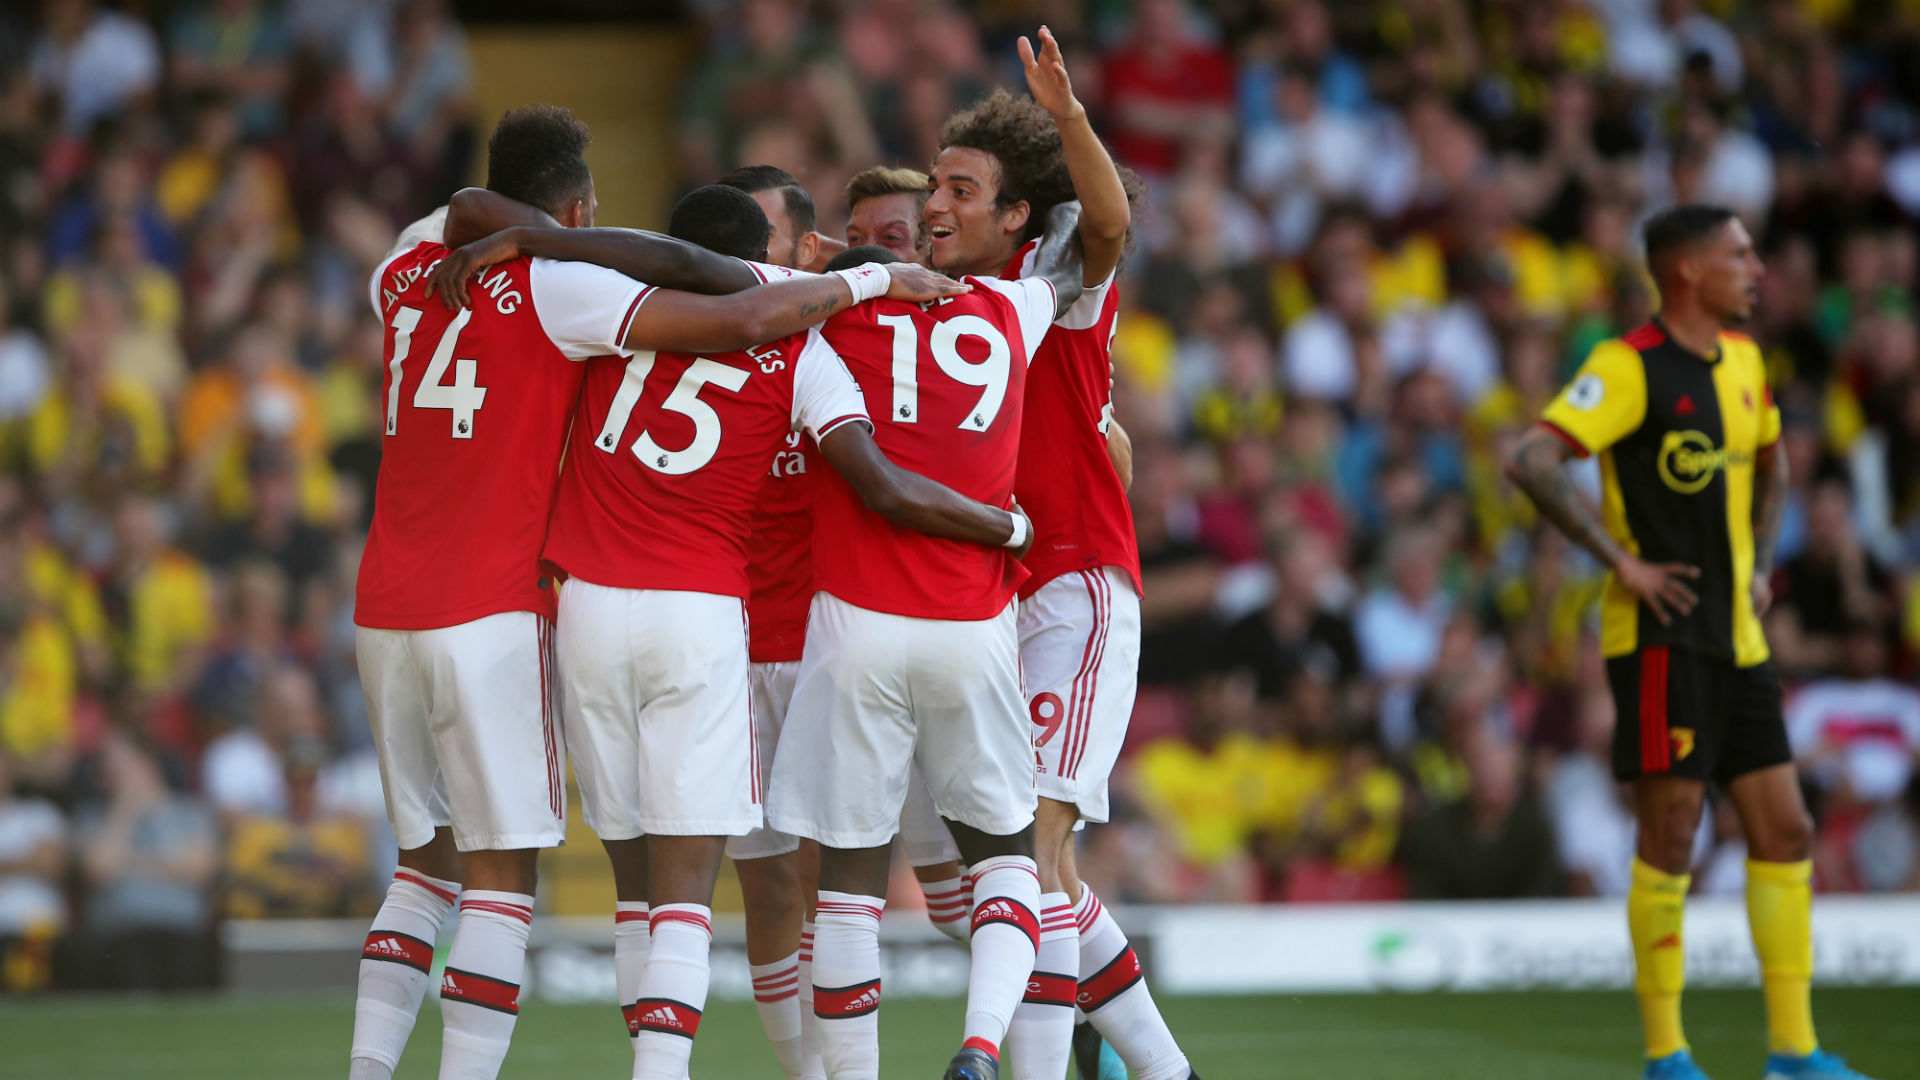 Watford v Arsenal Goal Celebration 09152019